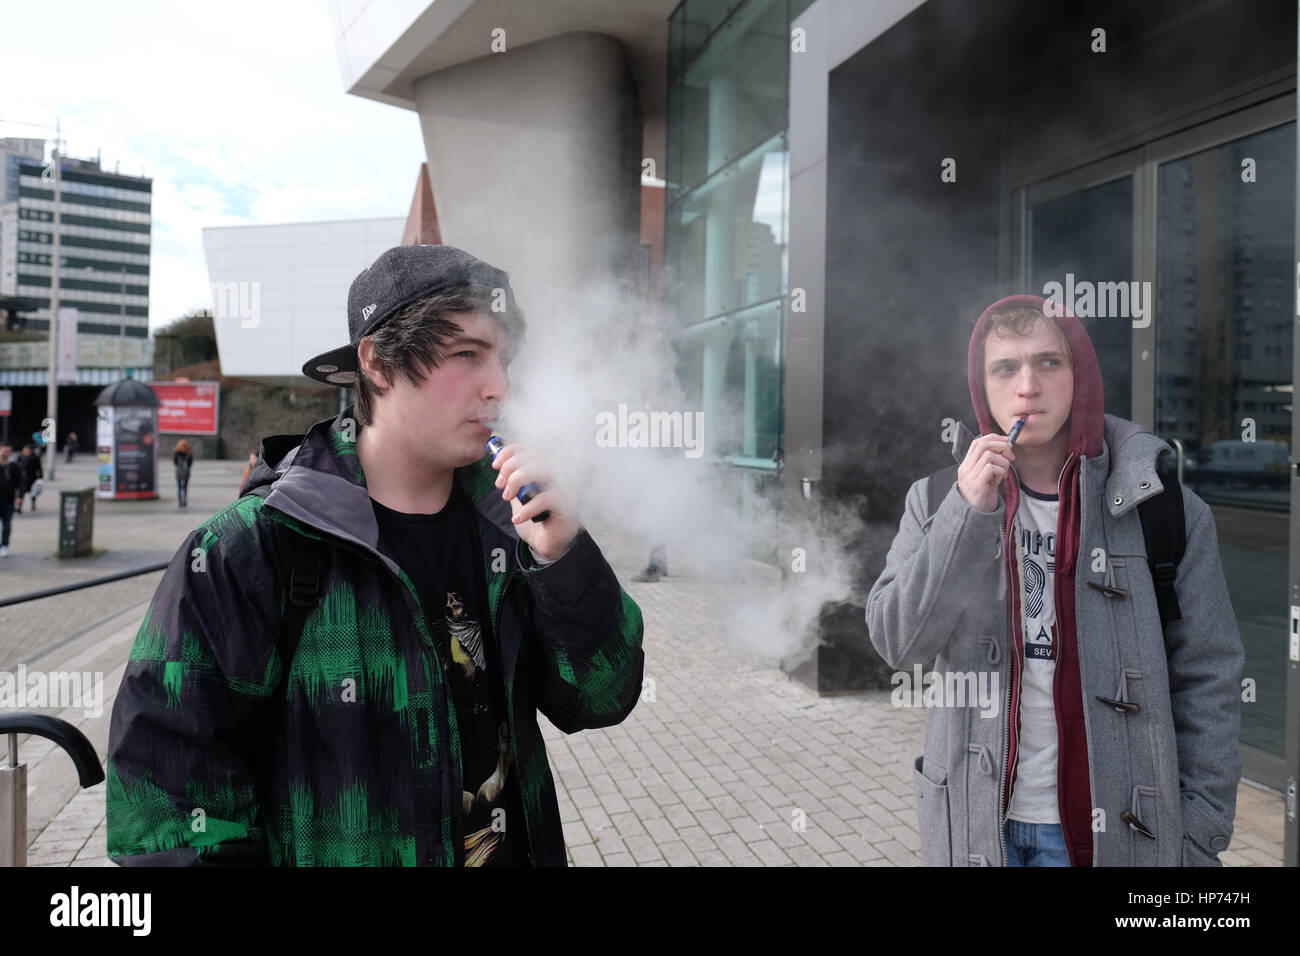 Carrie Edwards (left) 22 of age and Andrew Shaw (right) (22), USW Music Industry students, smoke e-cigarette during - Stock Image